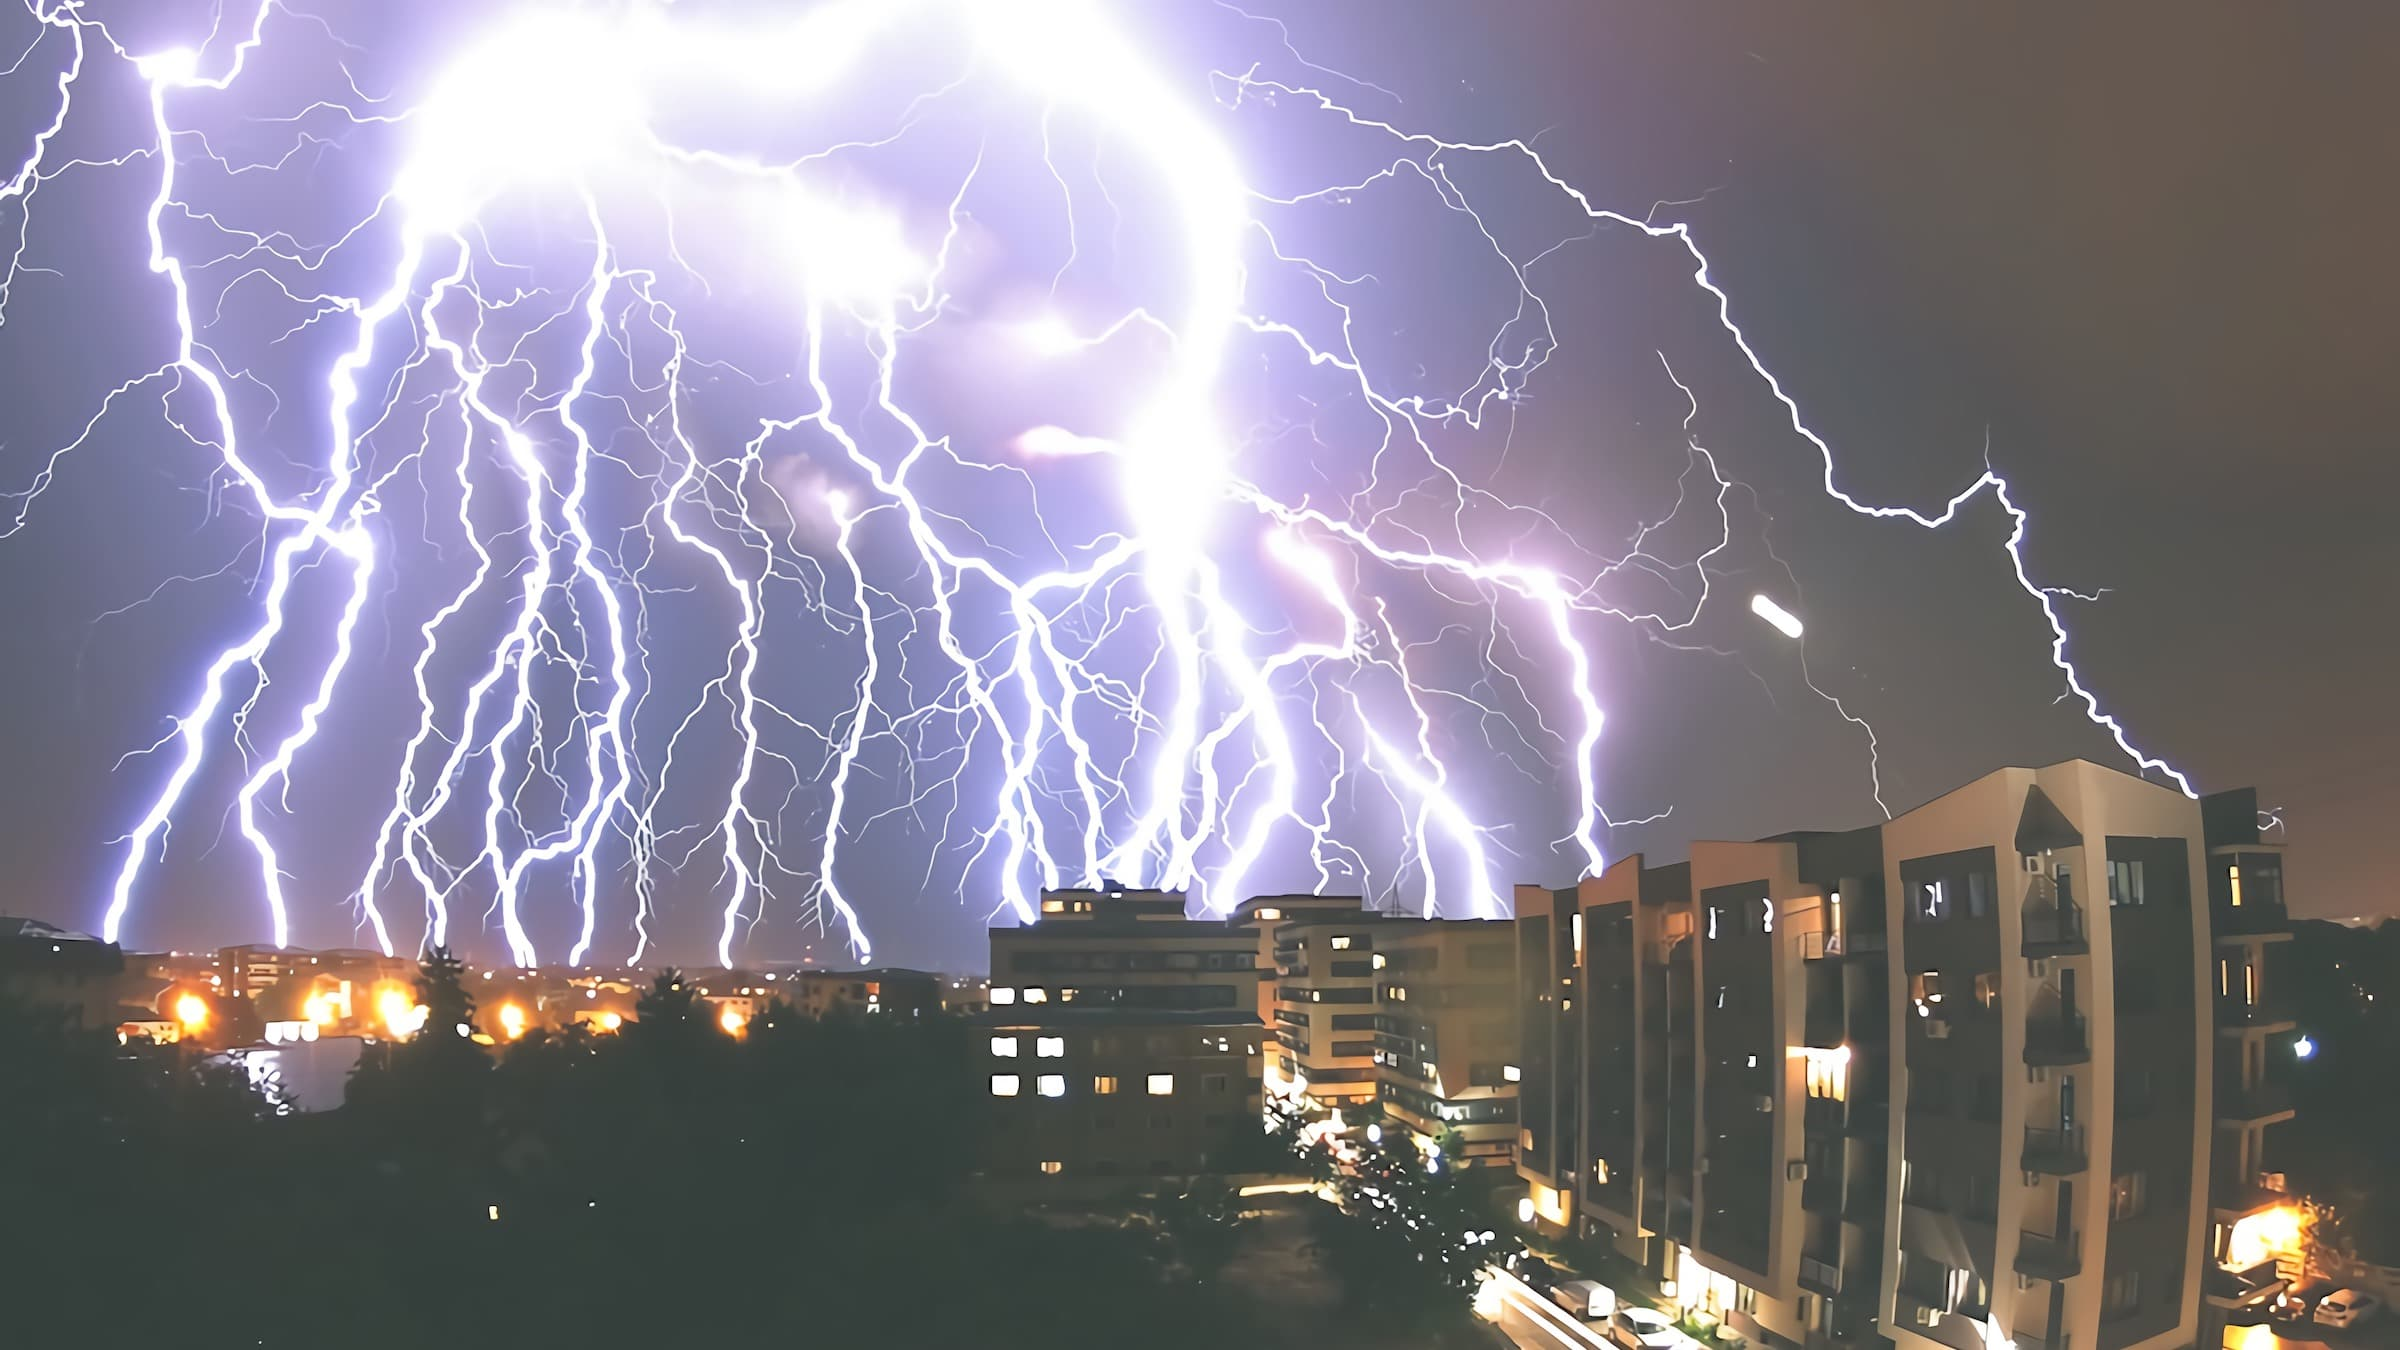 Grounding is the most effective technique for protection against lightning strike damage. Here are more ways to protect Solar street light systems from lightning strikes